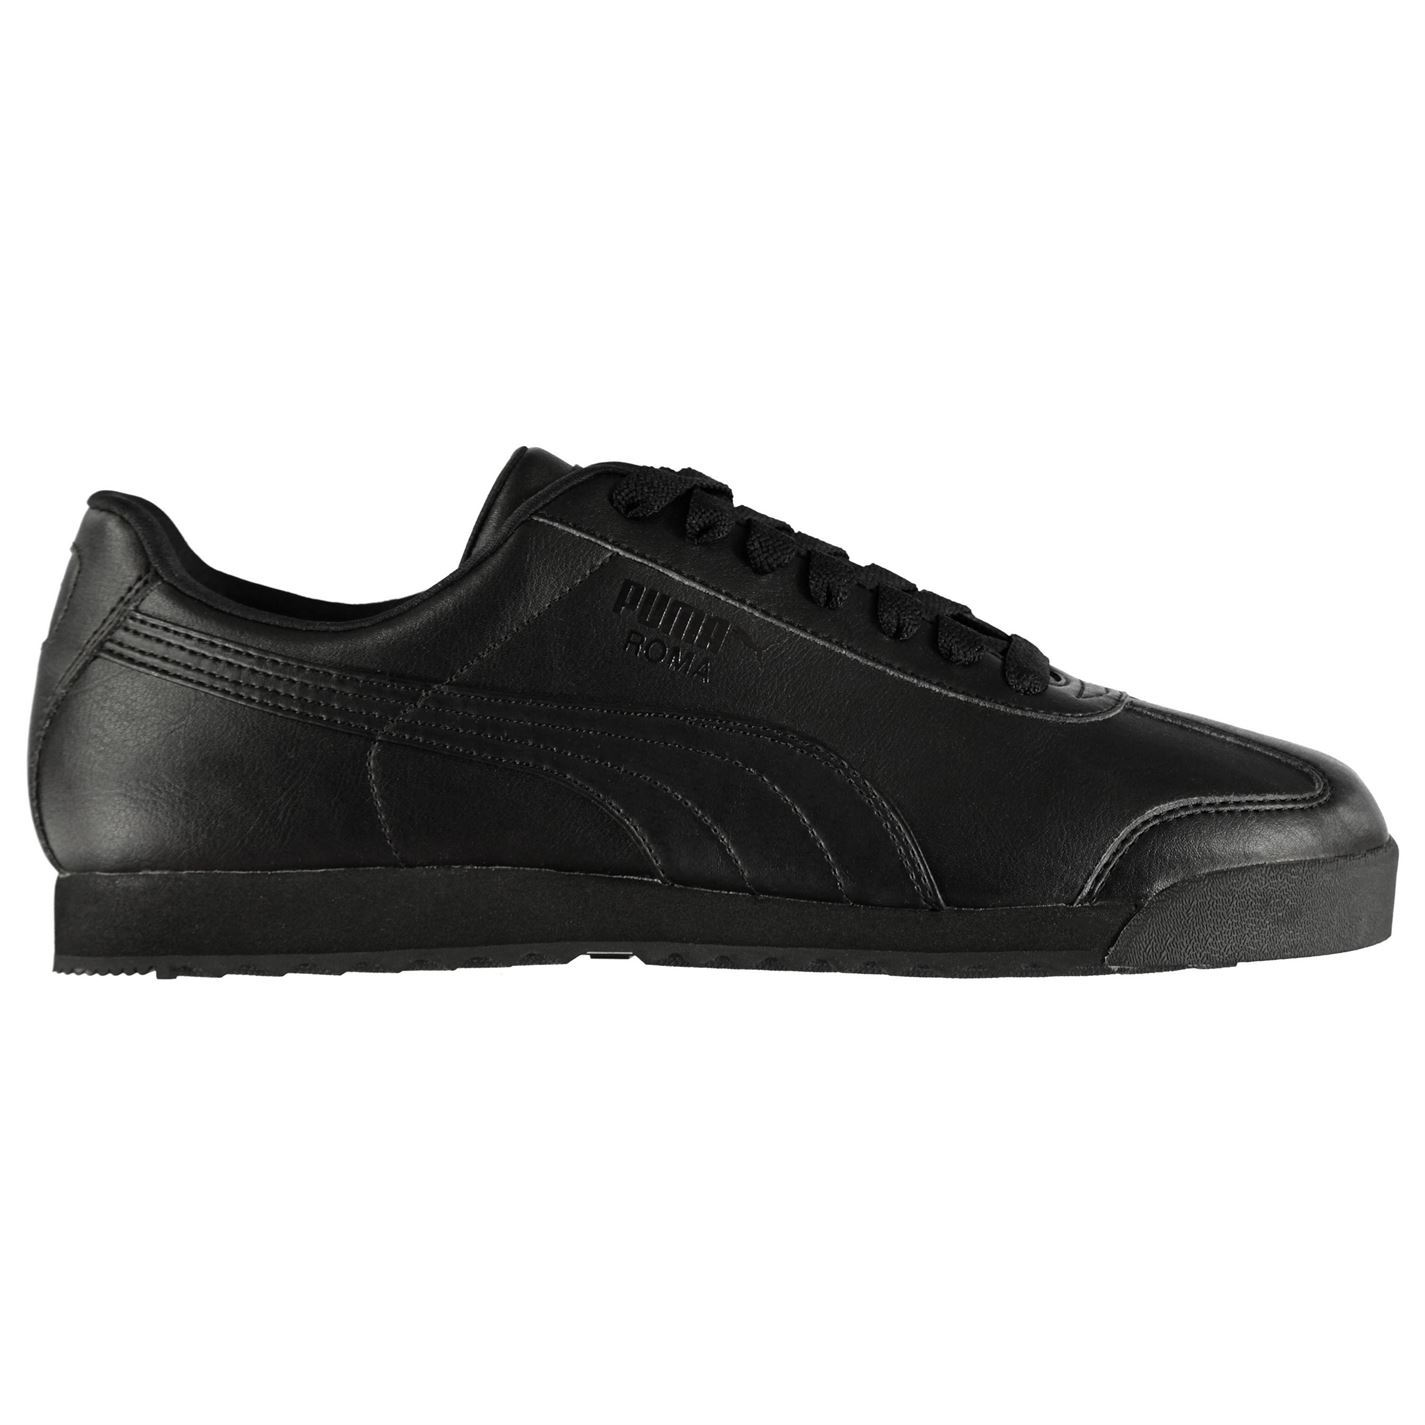 Puma-Roma-Basic-Trainers-Mens-Athleisure-Footwear-Shoes-Sneakers thumbnail 5